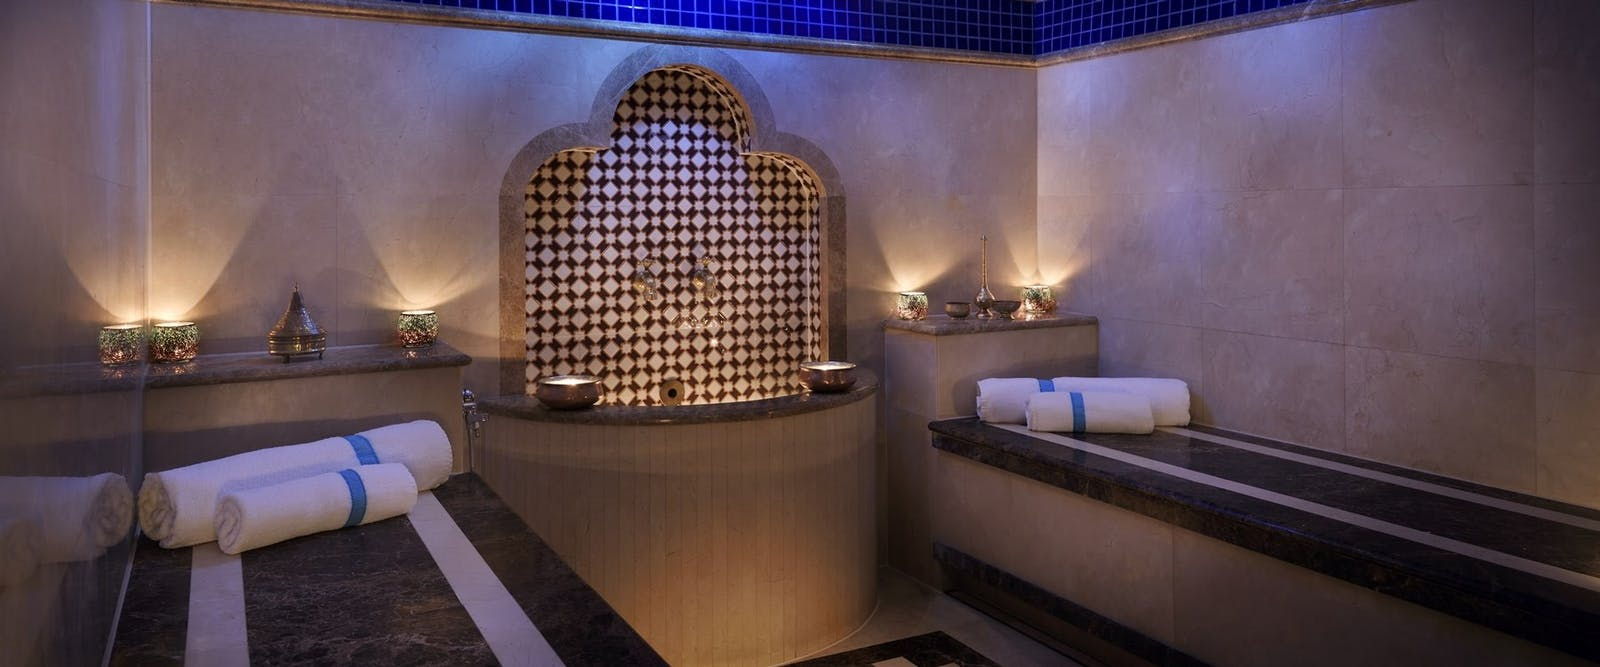 The Hammam at One&Only Royal Mirage - The Residence & Spa, Dubai